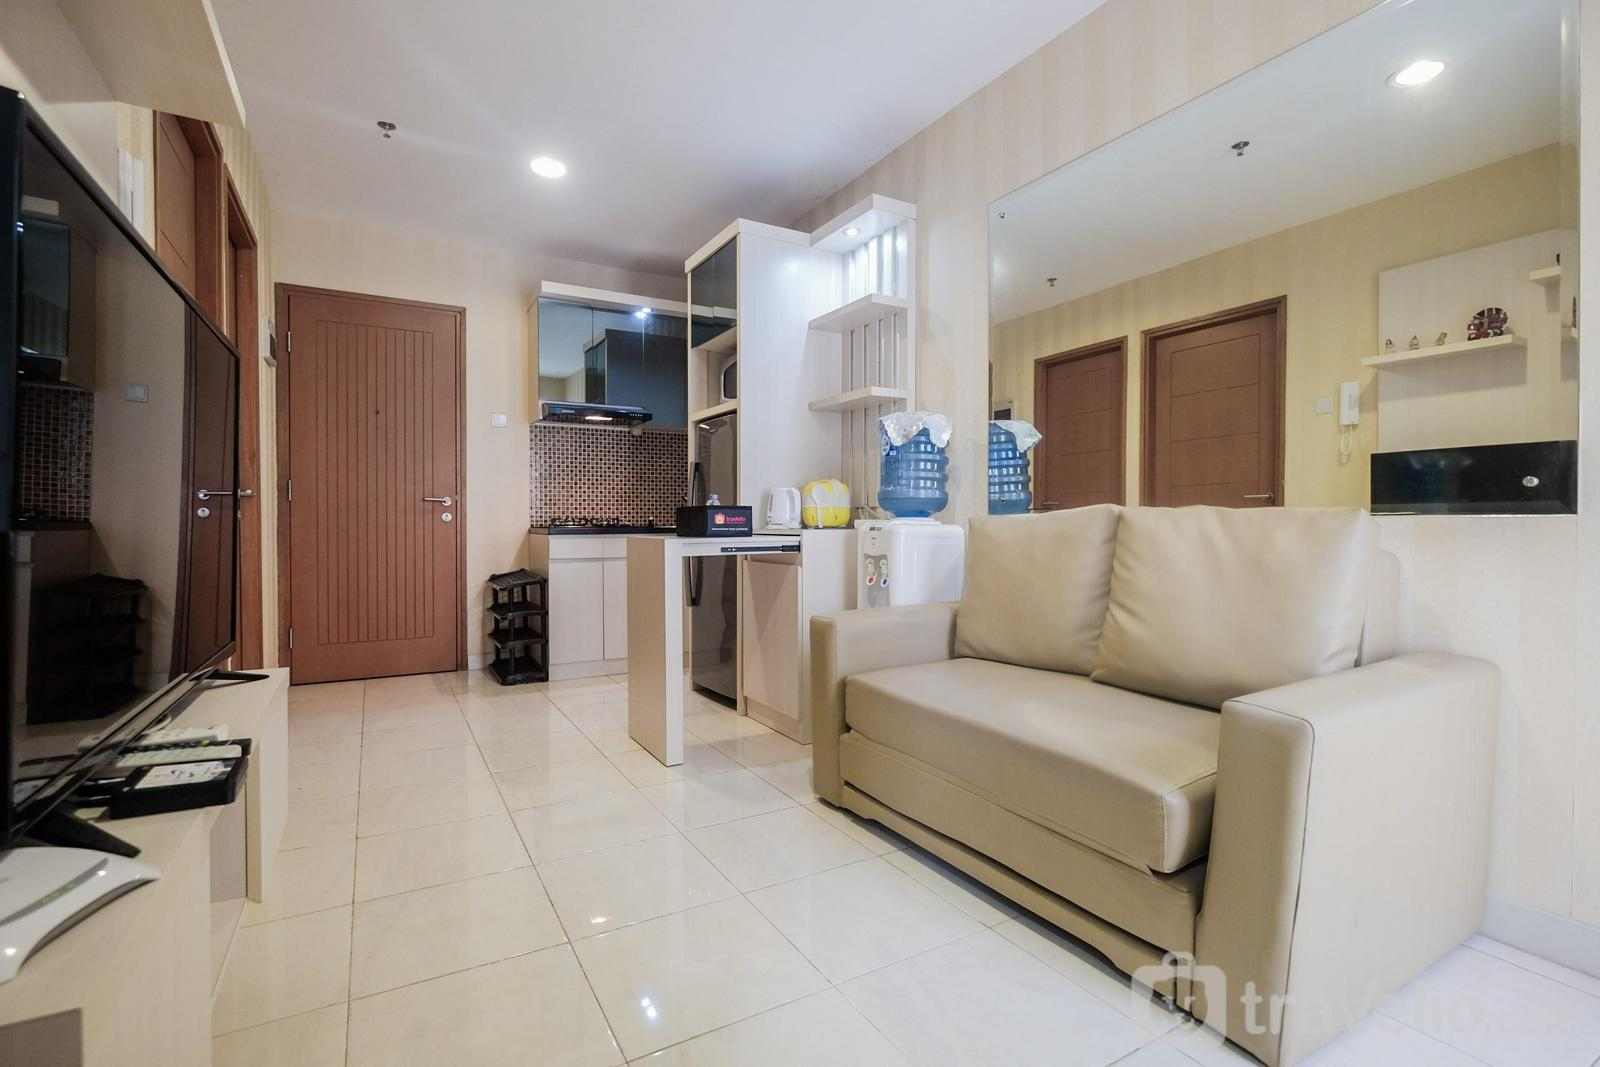 Apartemen Cinere Bellevue Suites - 2BR Apartment at Cinere Bellevue with Access to Mall By Travelio